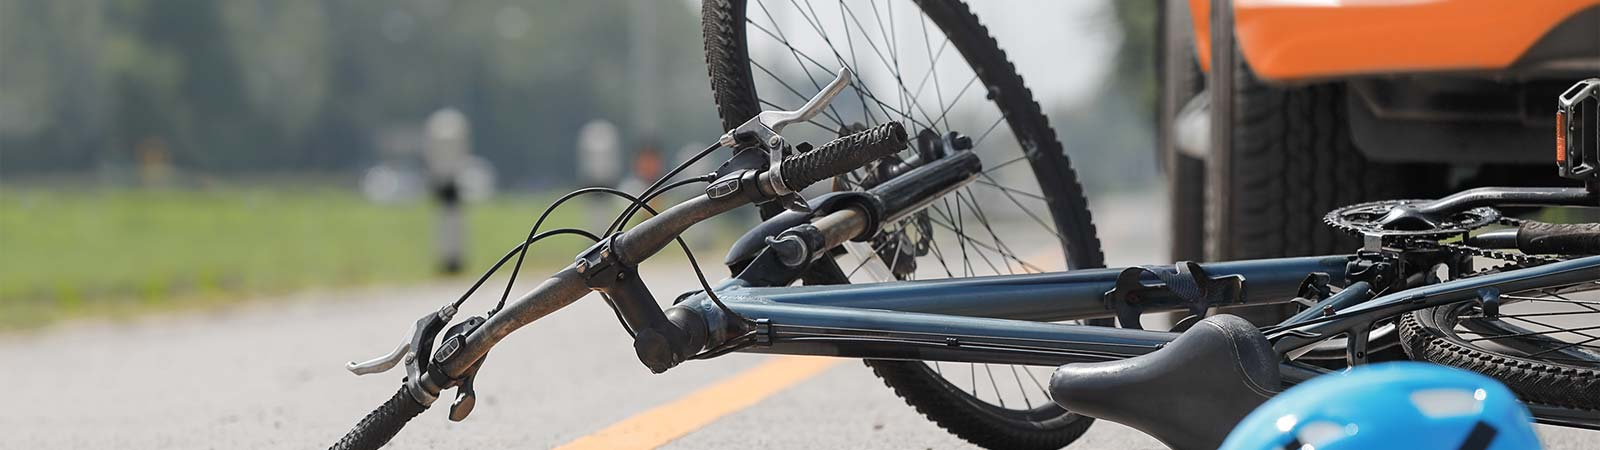 Bike and Pedestrian Accidents